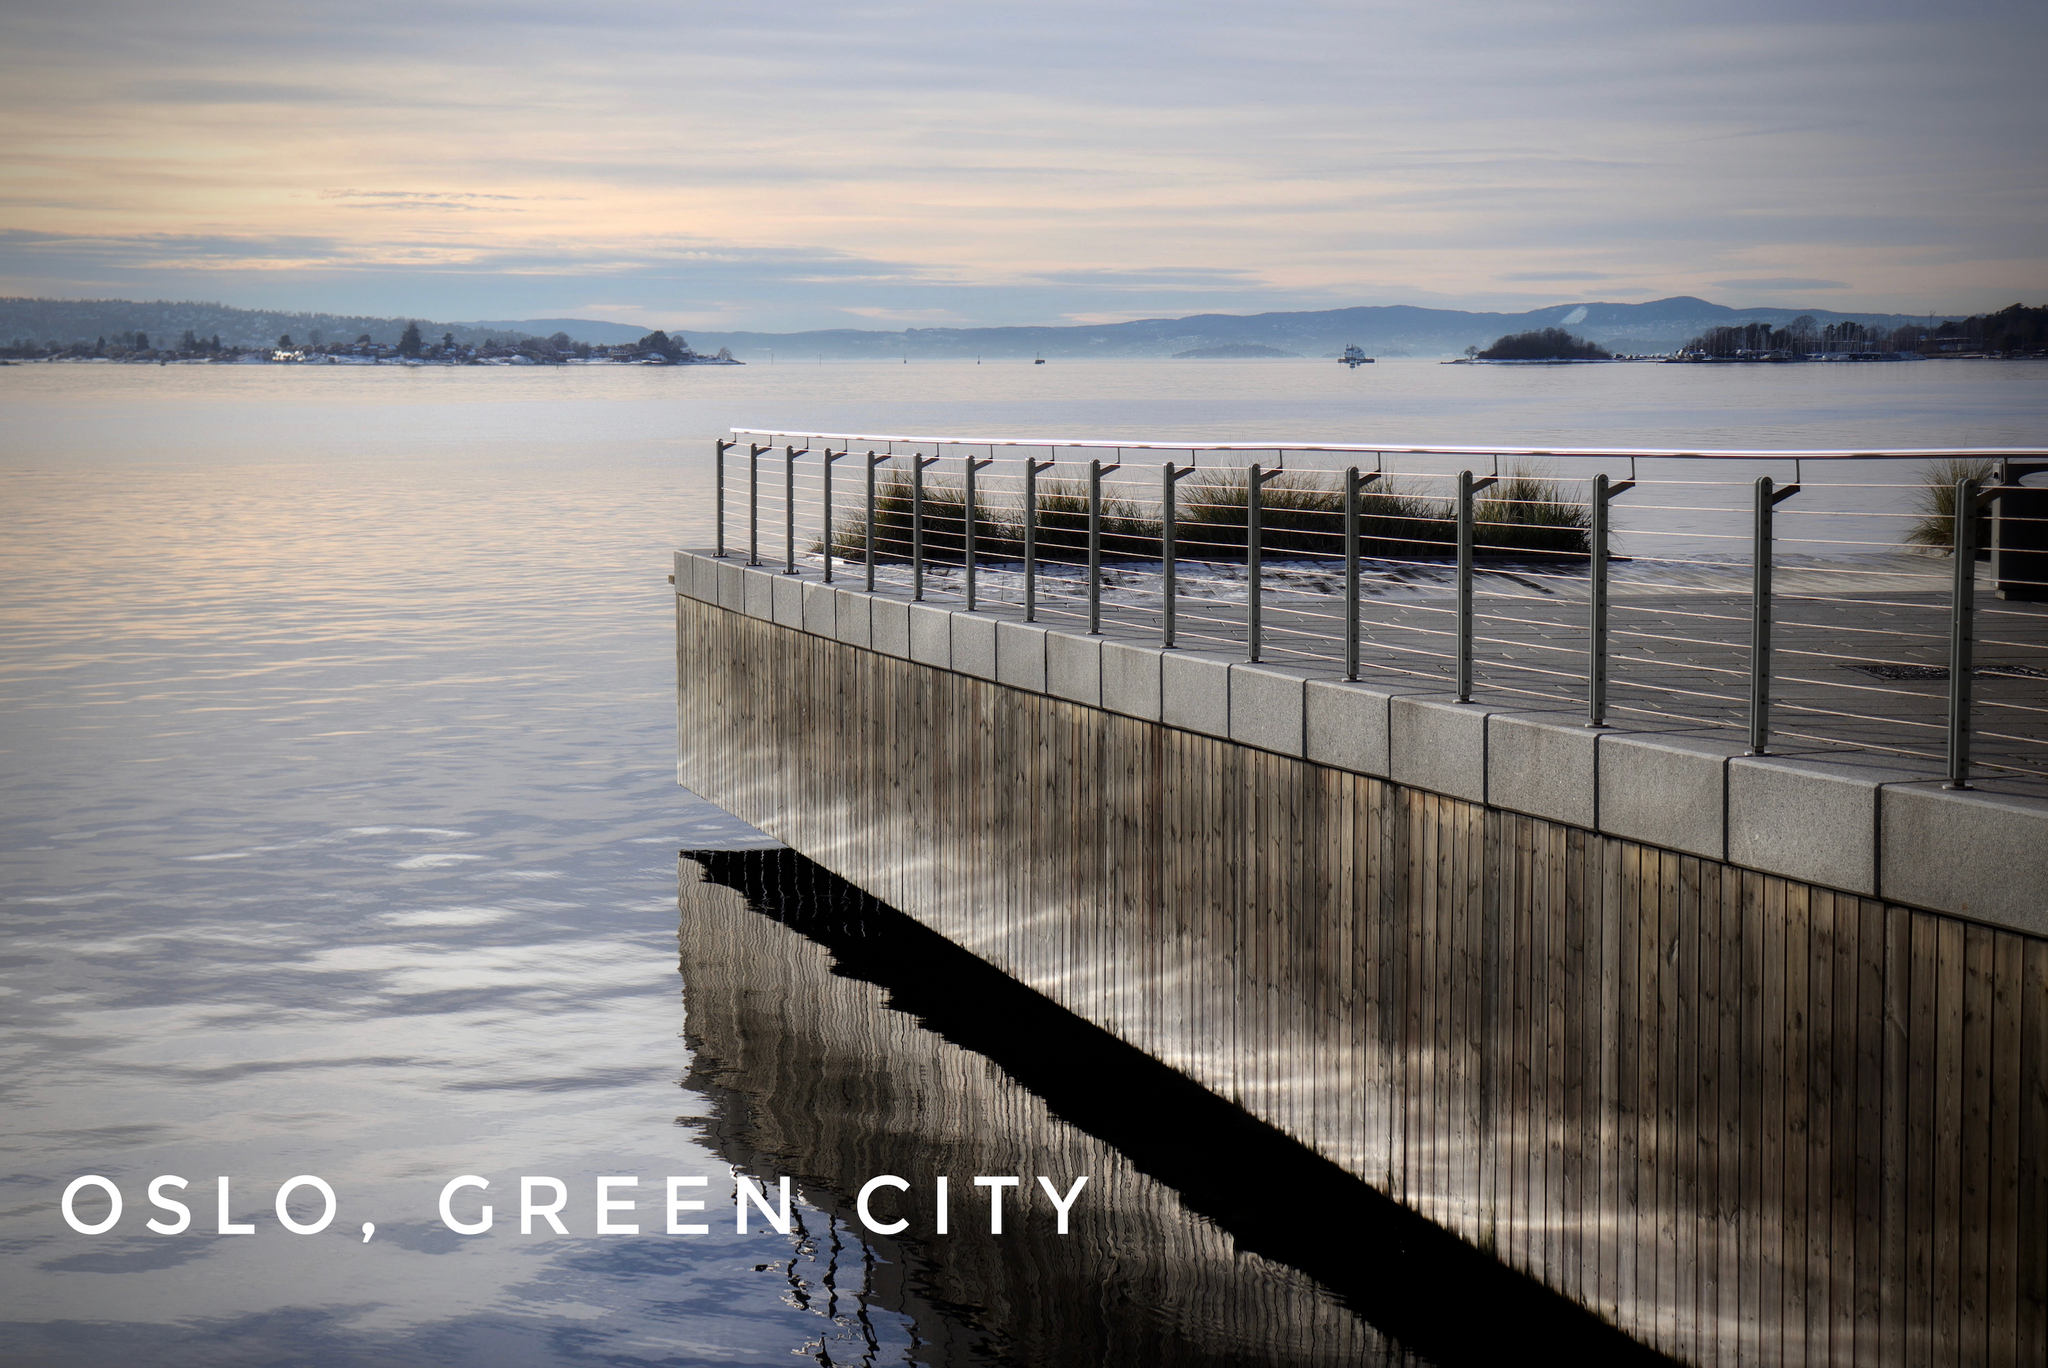 OSLO, green city